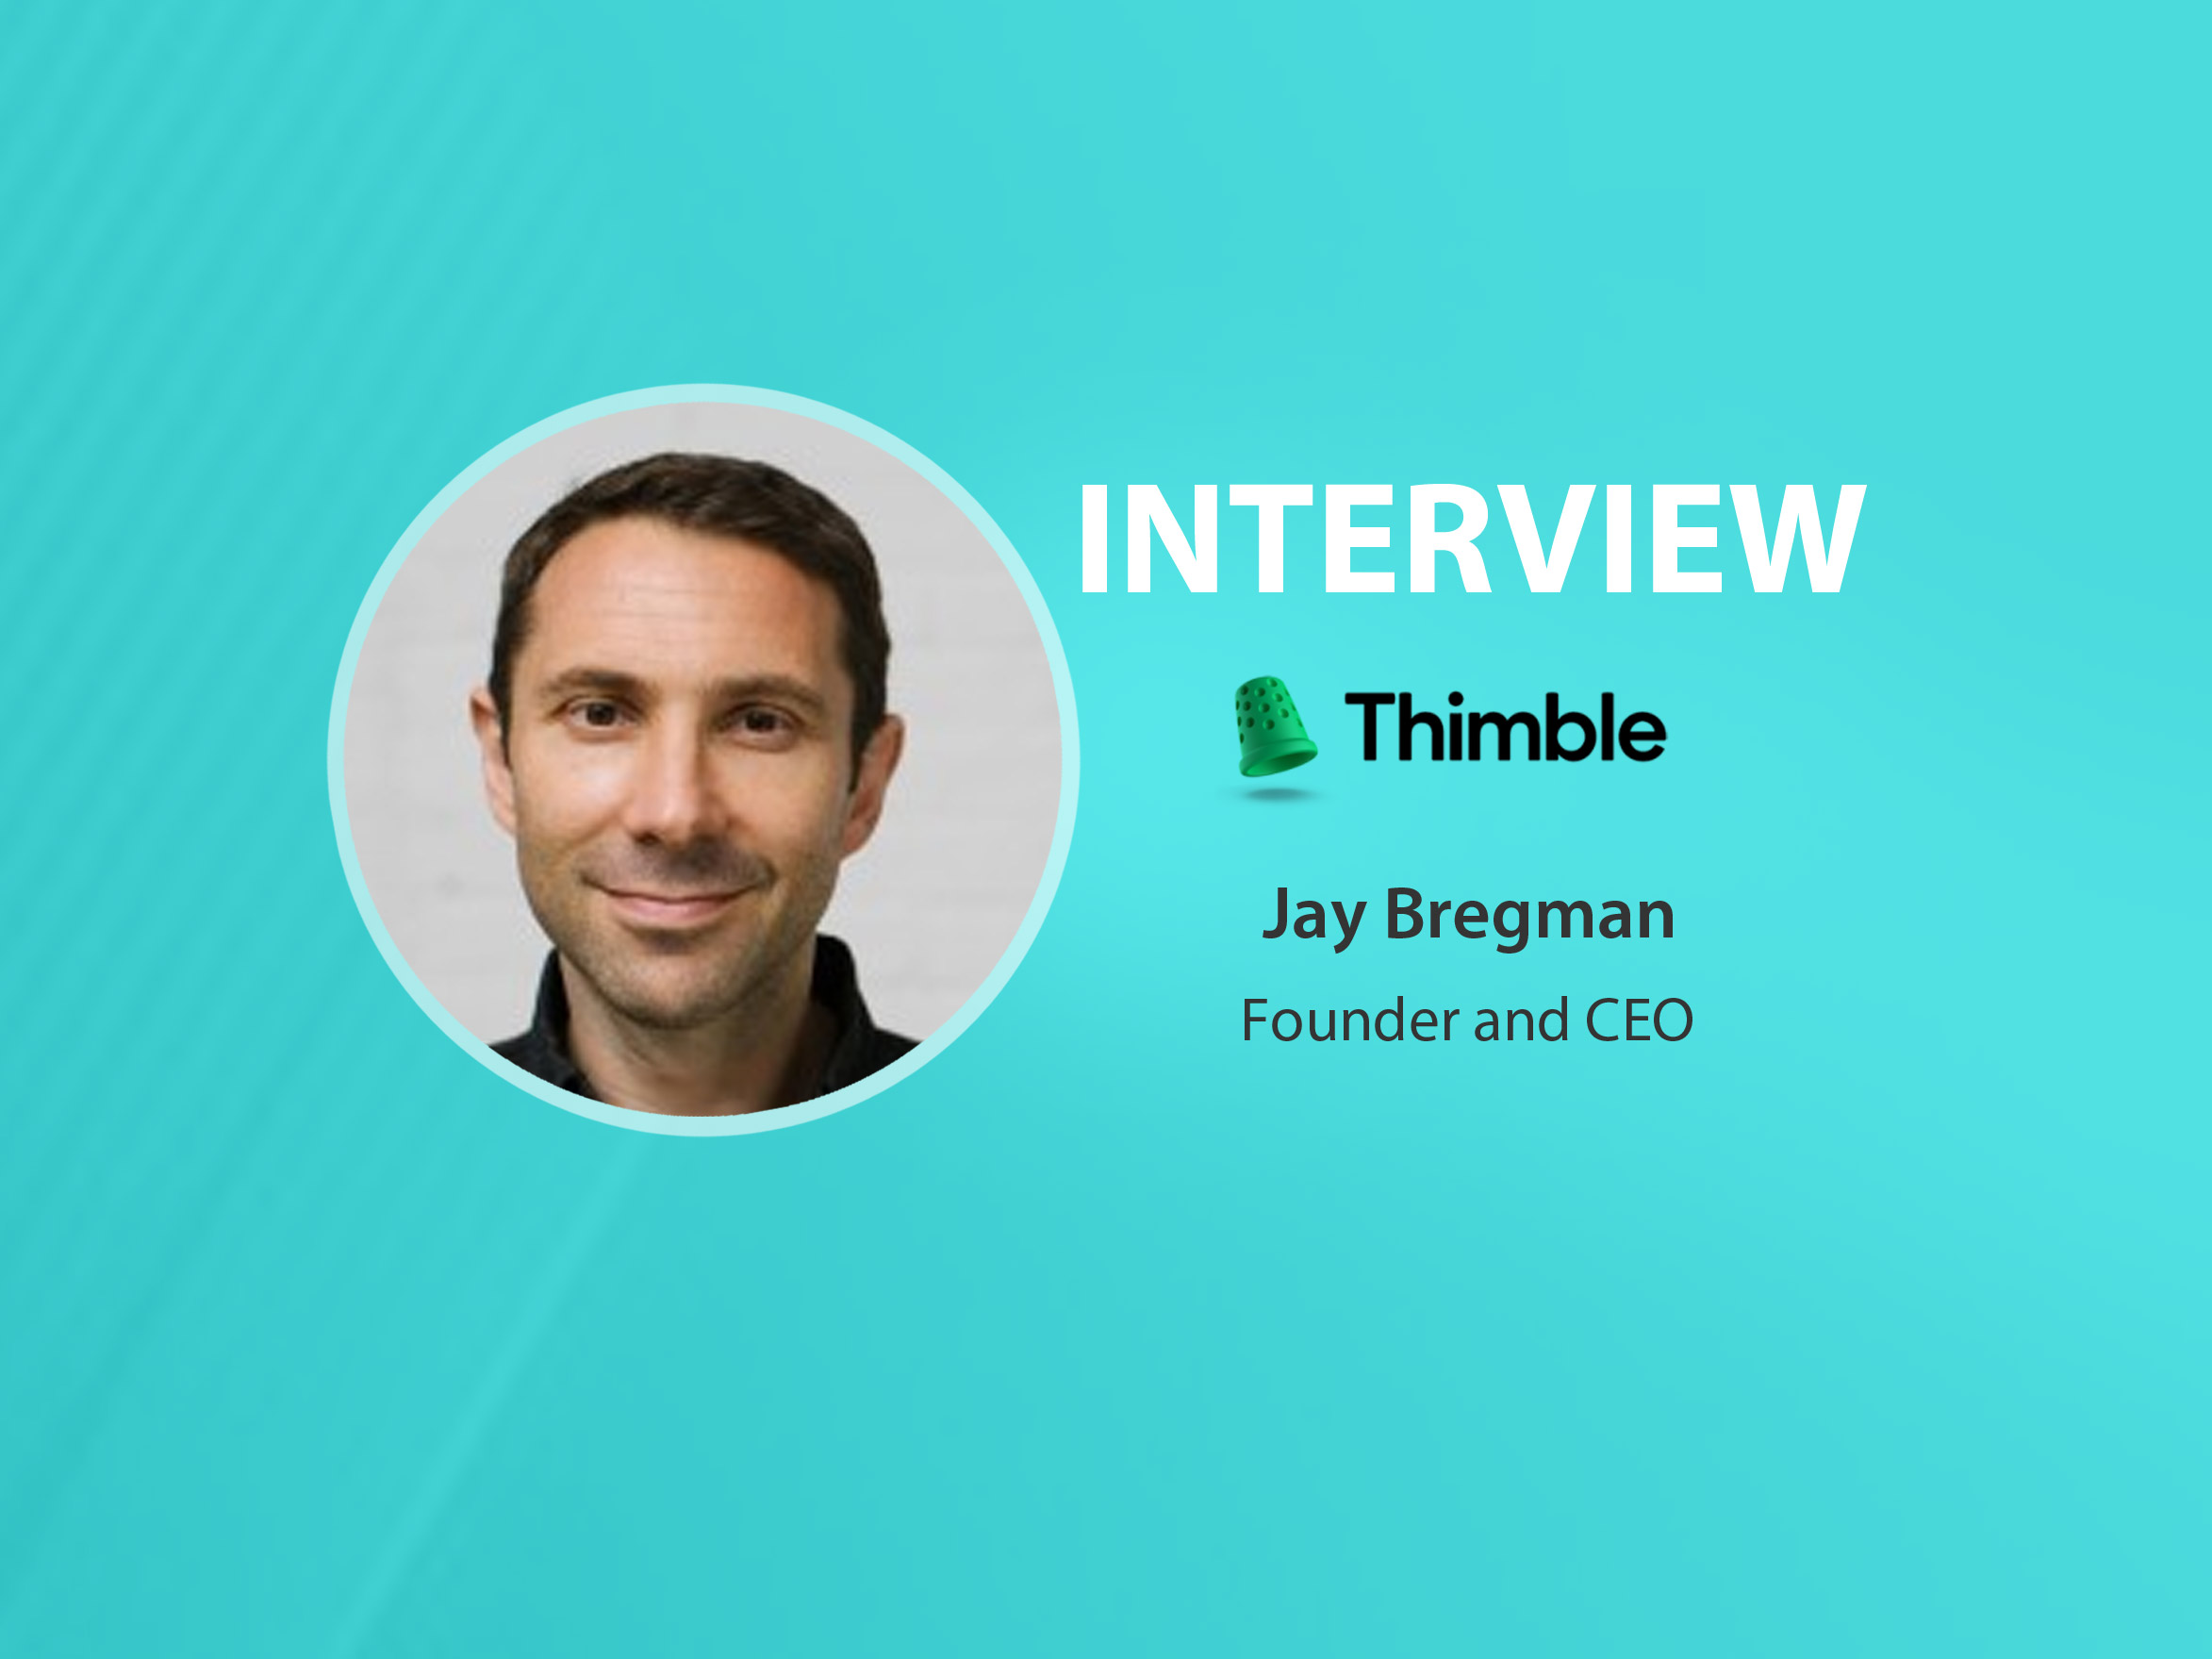 GlobalFintechSeries Interview with Jay Bregman, Founder and CEO at Thimble